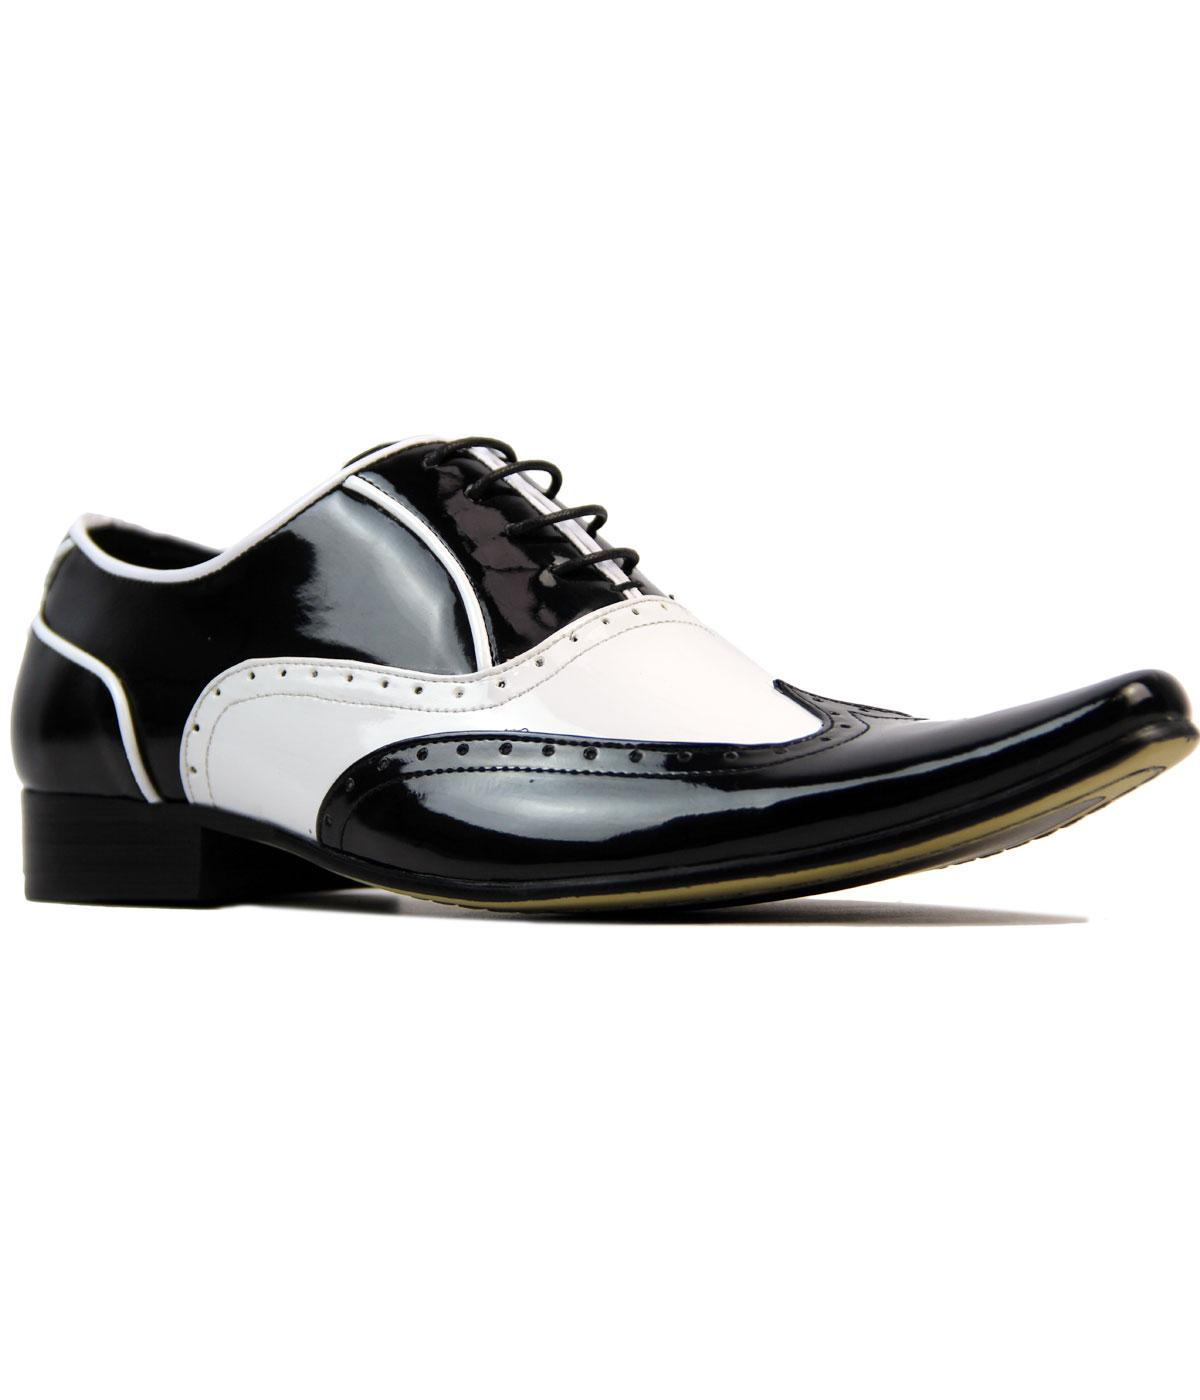 Aijaz MADCAP Retro Mod Patent Spatz Brogue Shoes